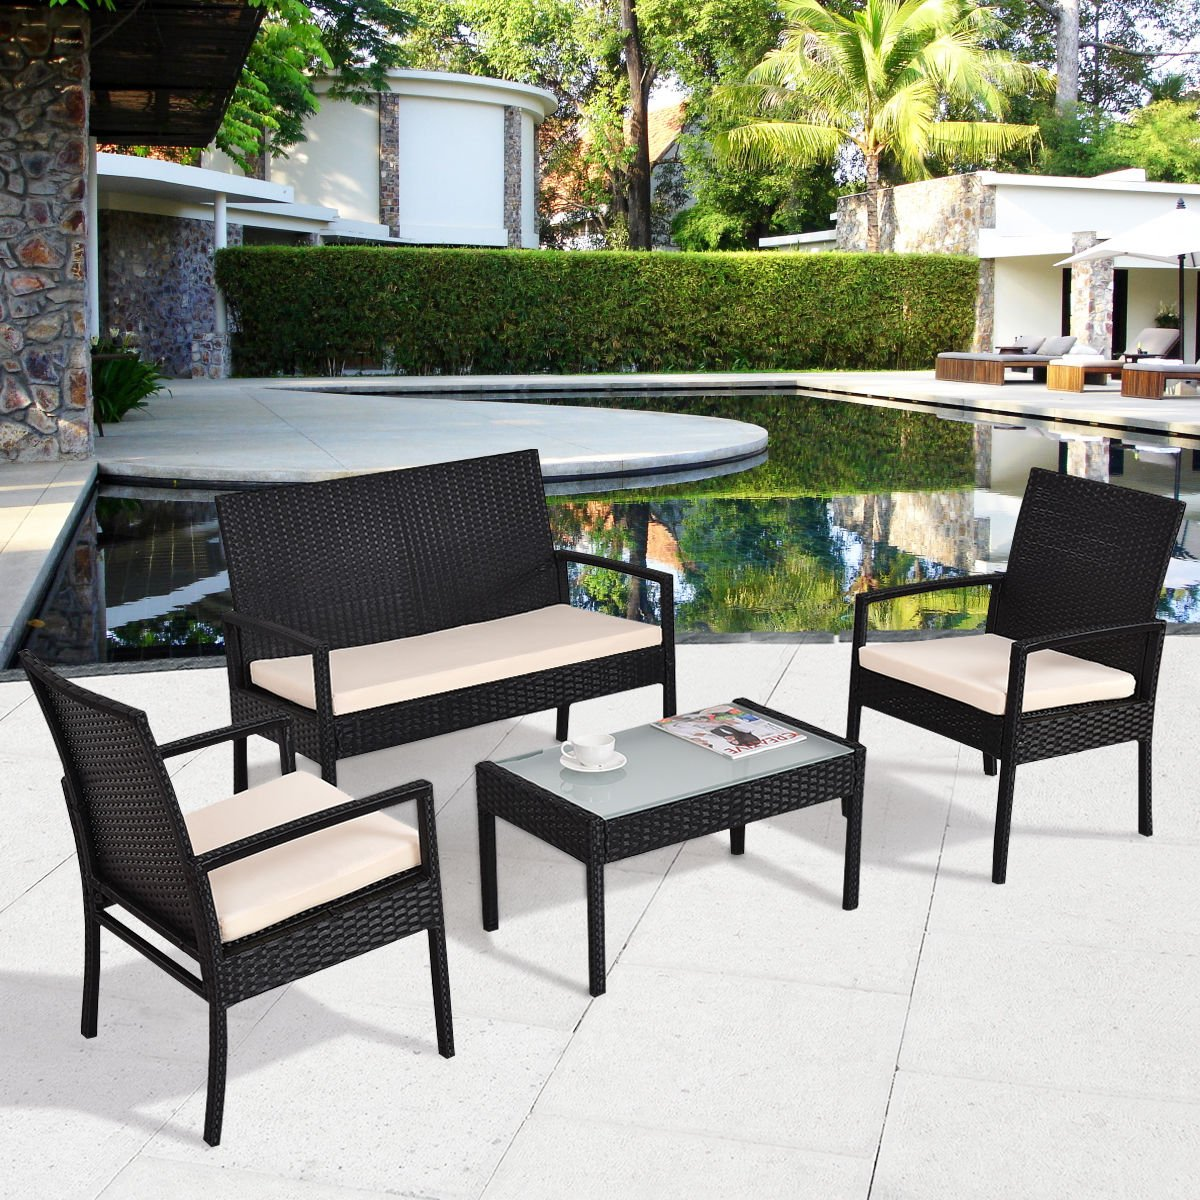 TANGKULA 4 Piece Patio Outdoor Conversation Set with Glass Coffee Table, Loveseat & 2 Cushioned Chairs Garden Lawn Rattan Wicker Patio Chat Set Outdoor Furniture Set (Black)